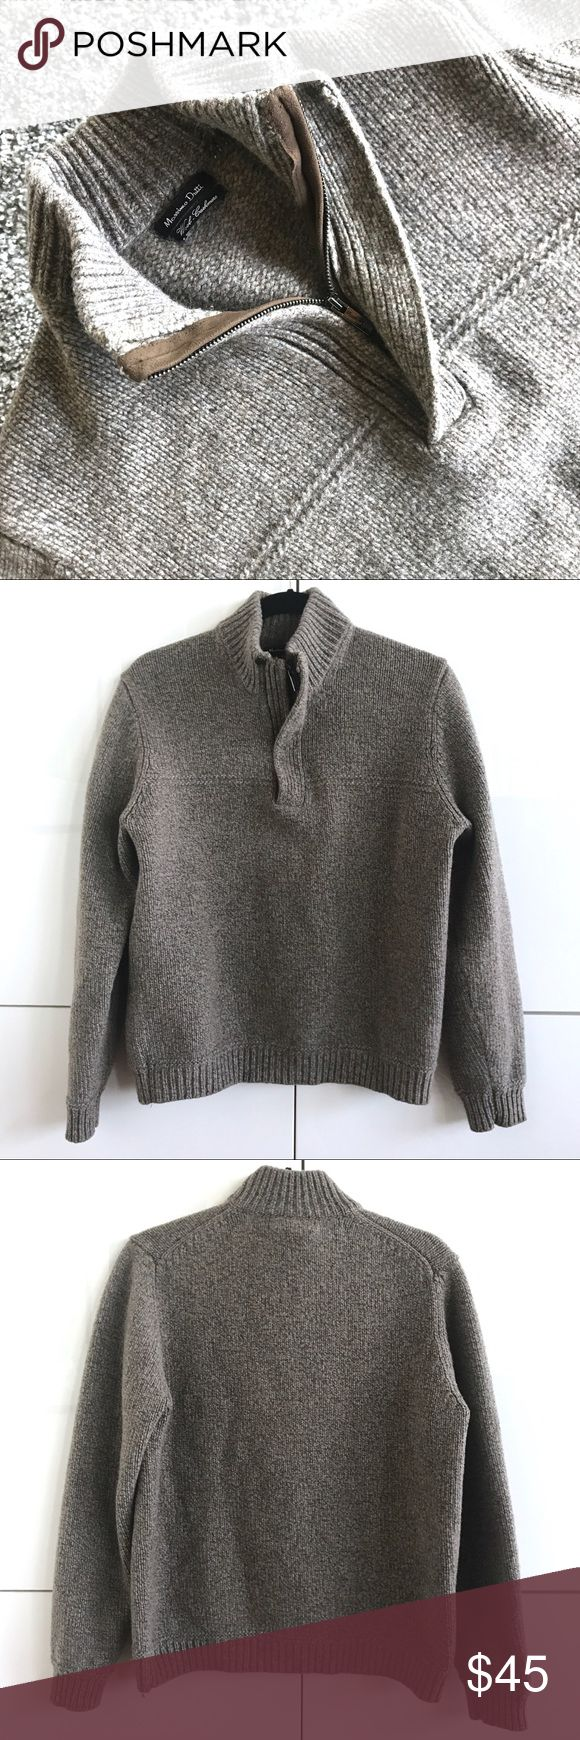 Like New Massimo Dutti Men's Half Zip Chunky Knit Like New Massimo Dutti Men's Half Zip Chunky Knit.  Tag is marked as large, but this is more of a men's medium (thus, I am listing as such).  Great gray, brown & blue thread make for a rich presentation.  90% wool; 10% cashmere.  Although it is a men's sweater, this would make for an amazing oversized knit with leggings on a petite woman! Massimo Dutti Sweaters